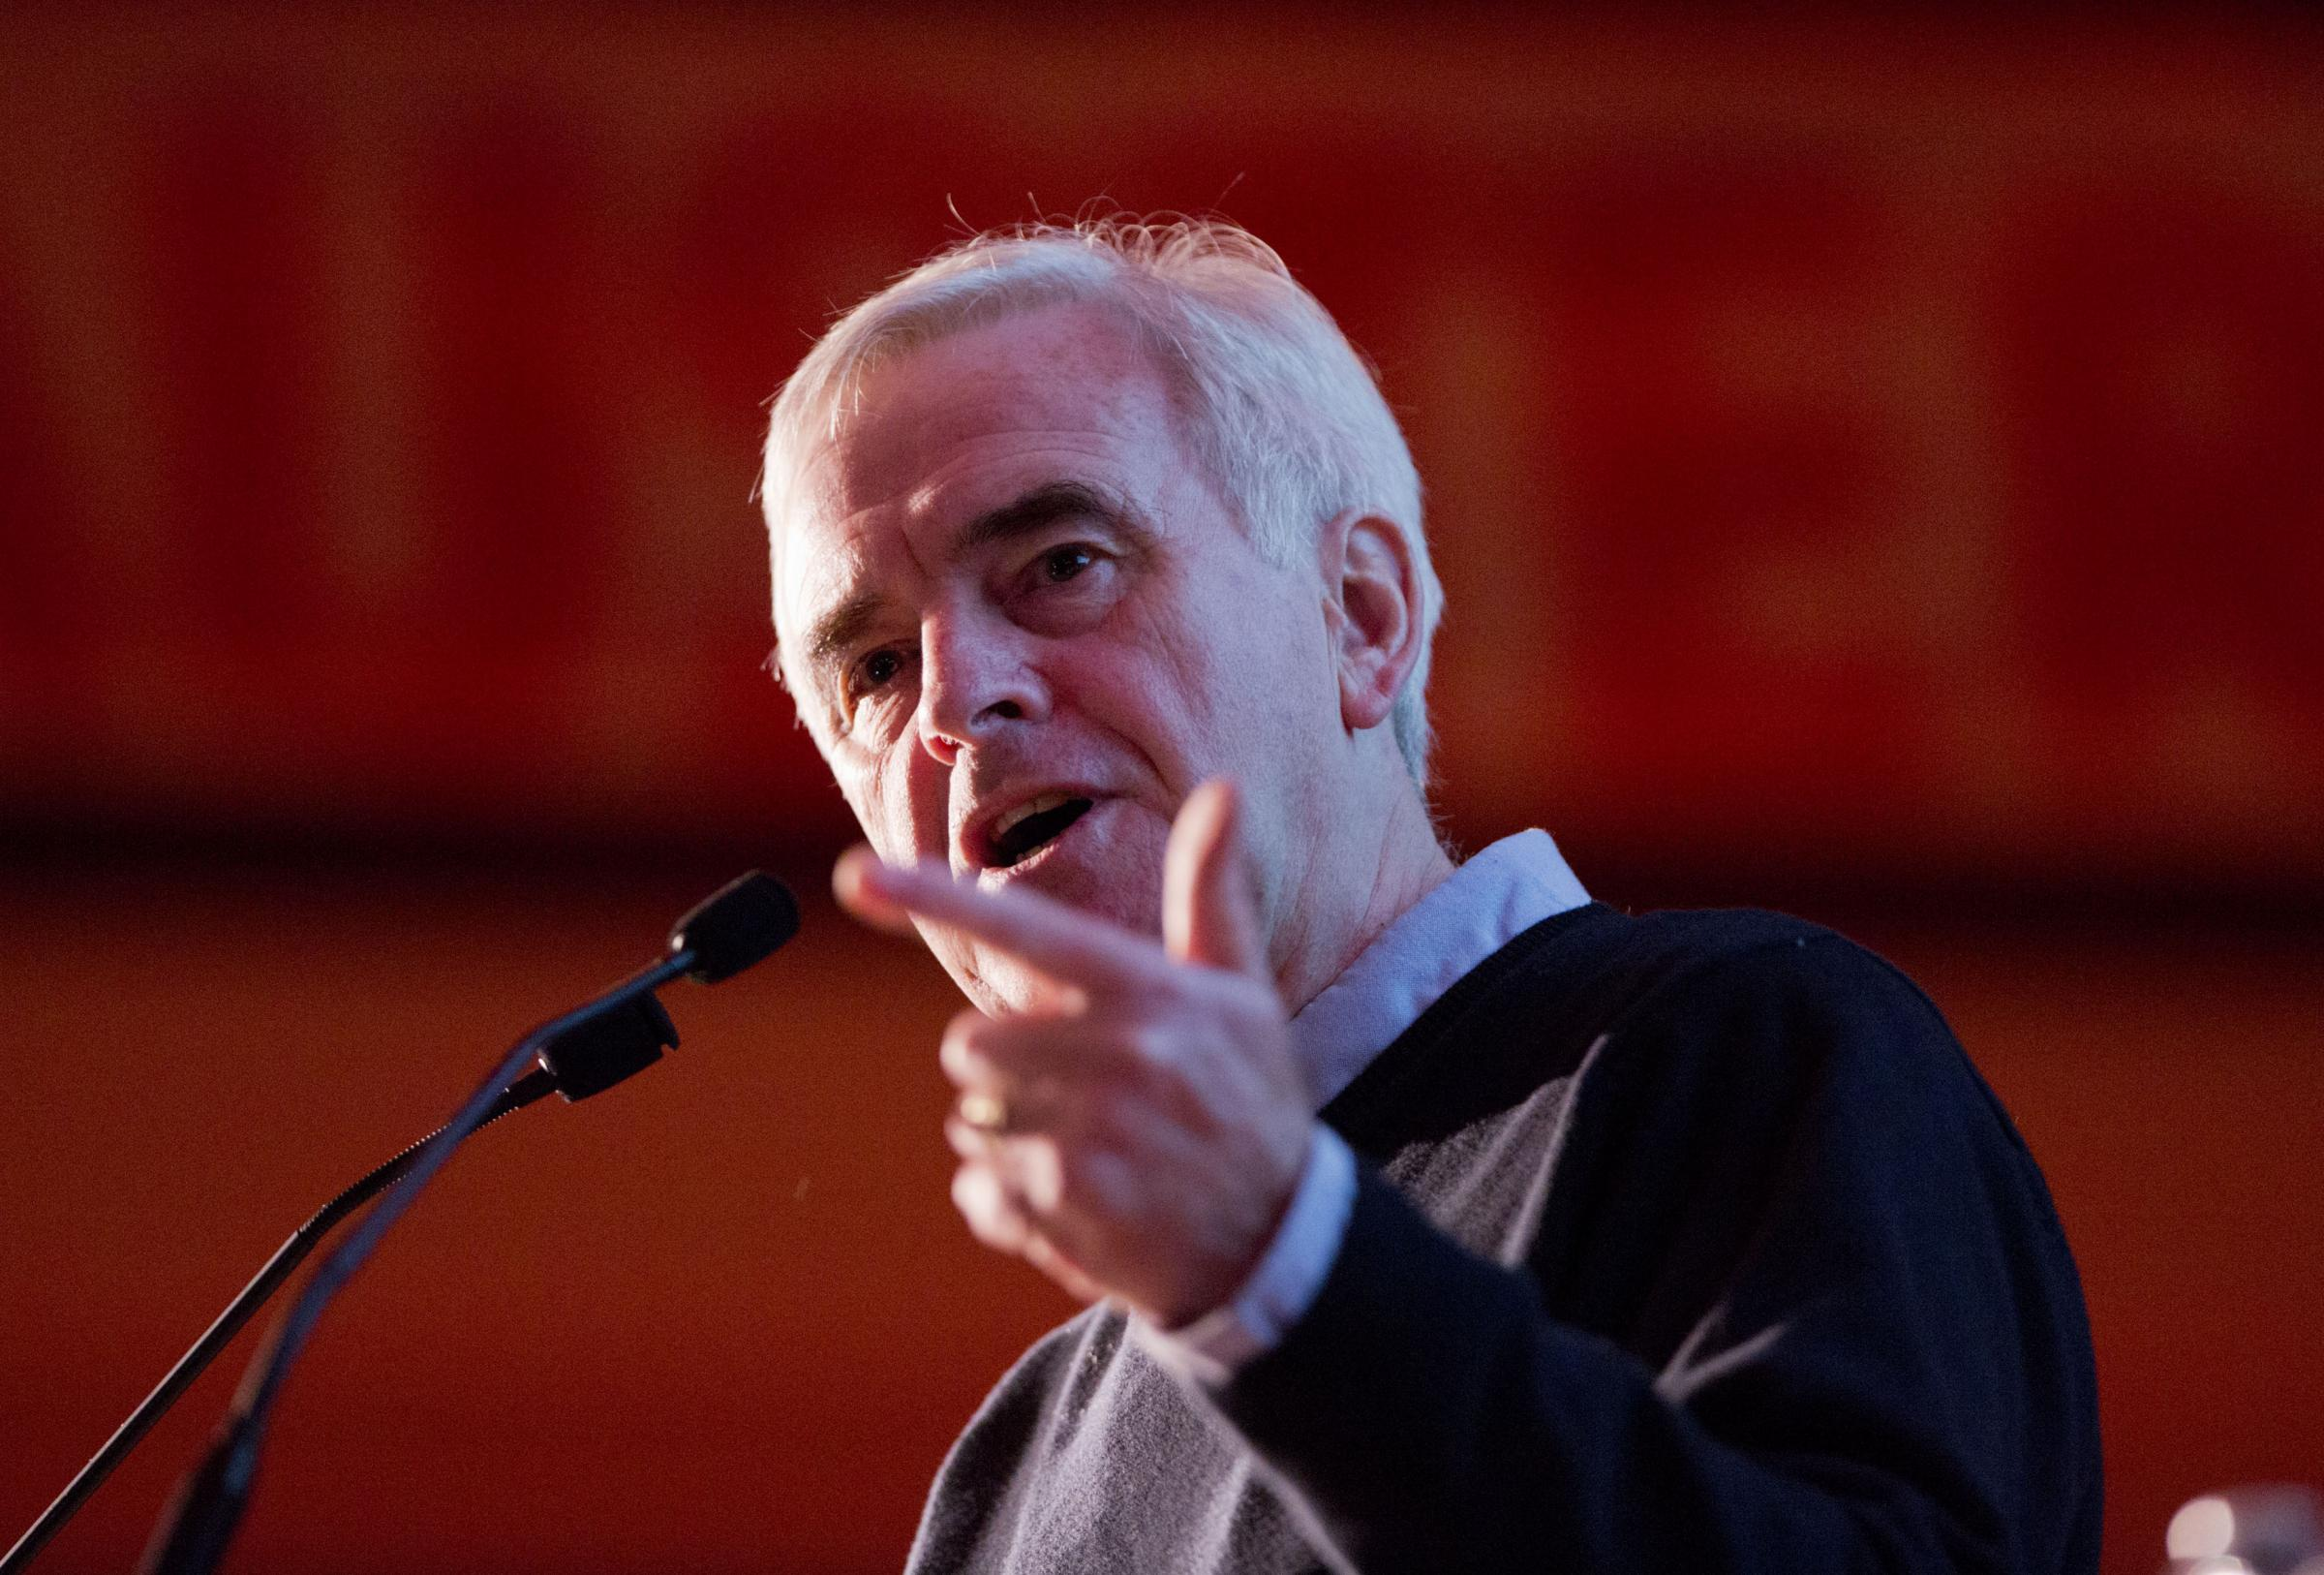 Pension promise: Labour's McDonnell insists party will stick to triple lock pledge amid Brexit uncertainty